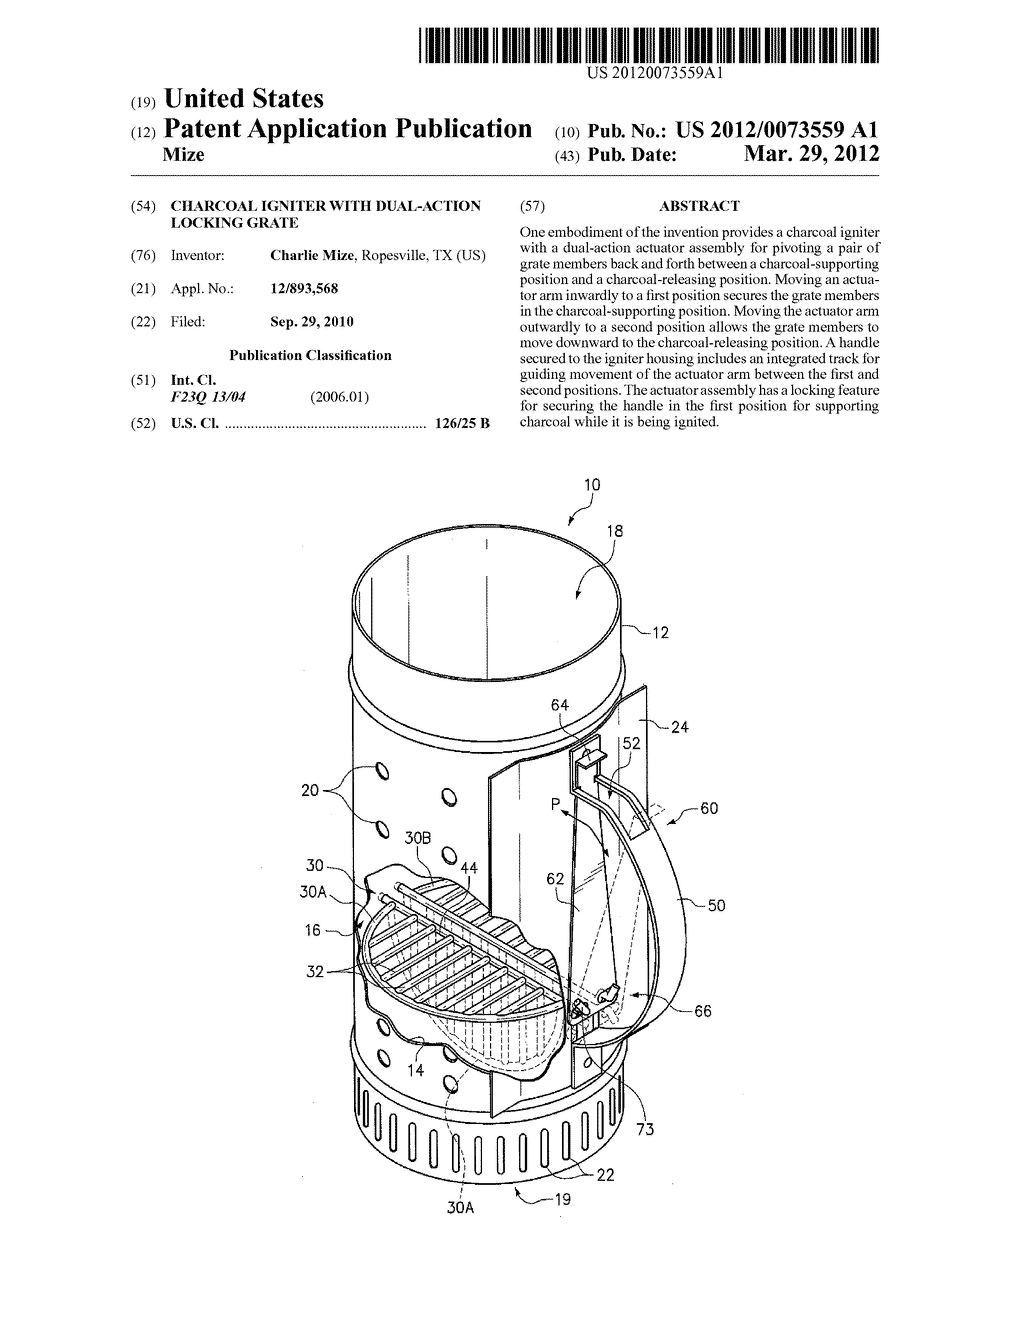 CHARCOAL IGNITER WITH DUAL-ACTION LOCKING GRATE - diagram, schematic, and image 01